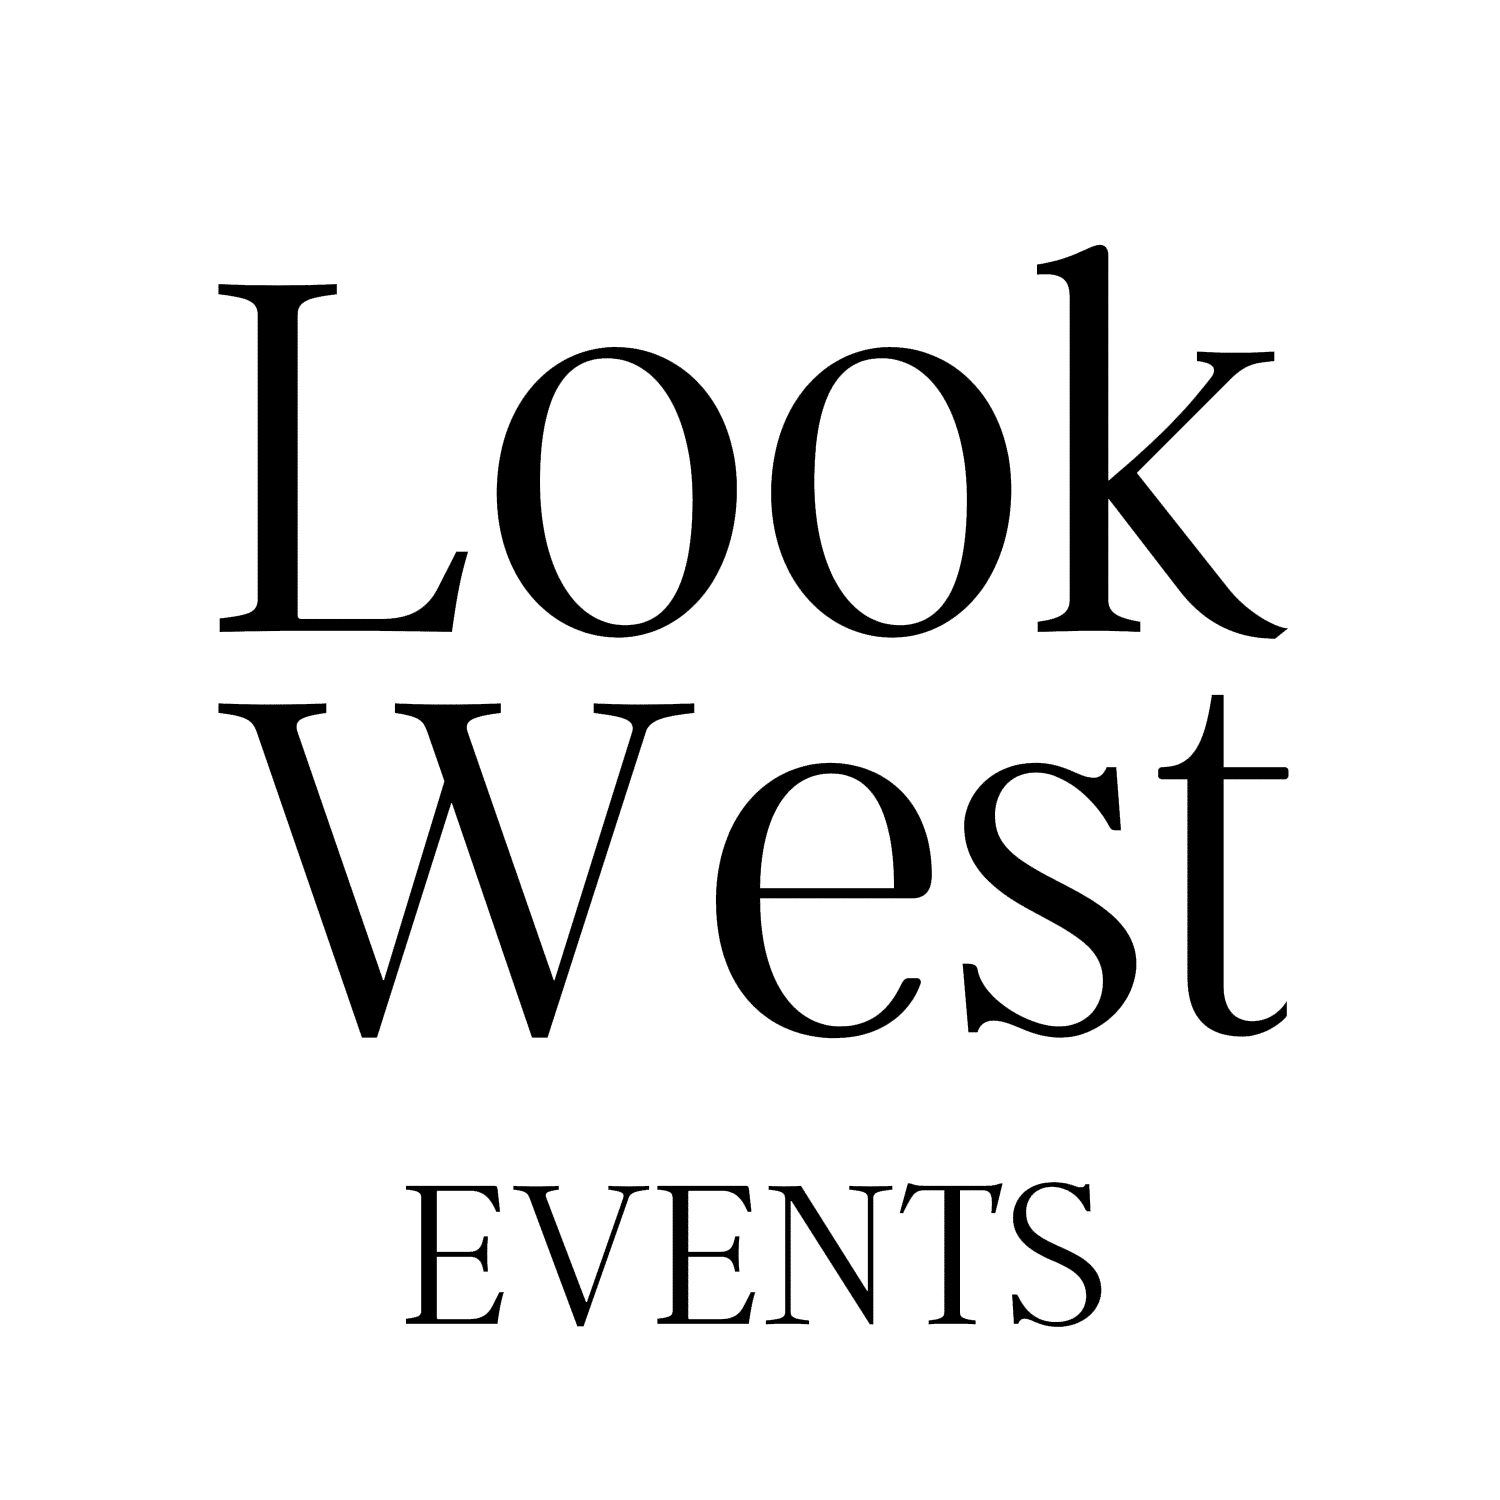 look west events logo